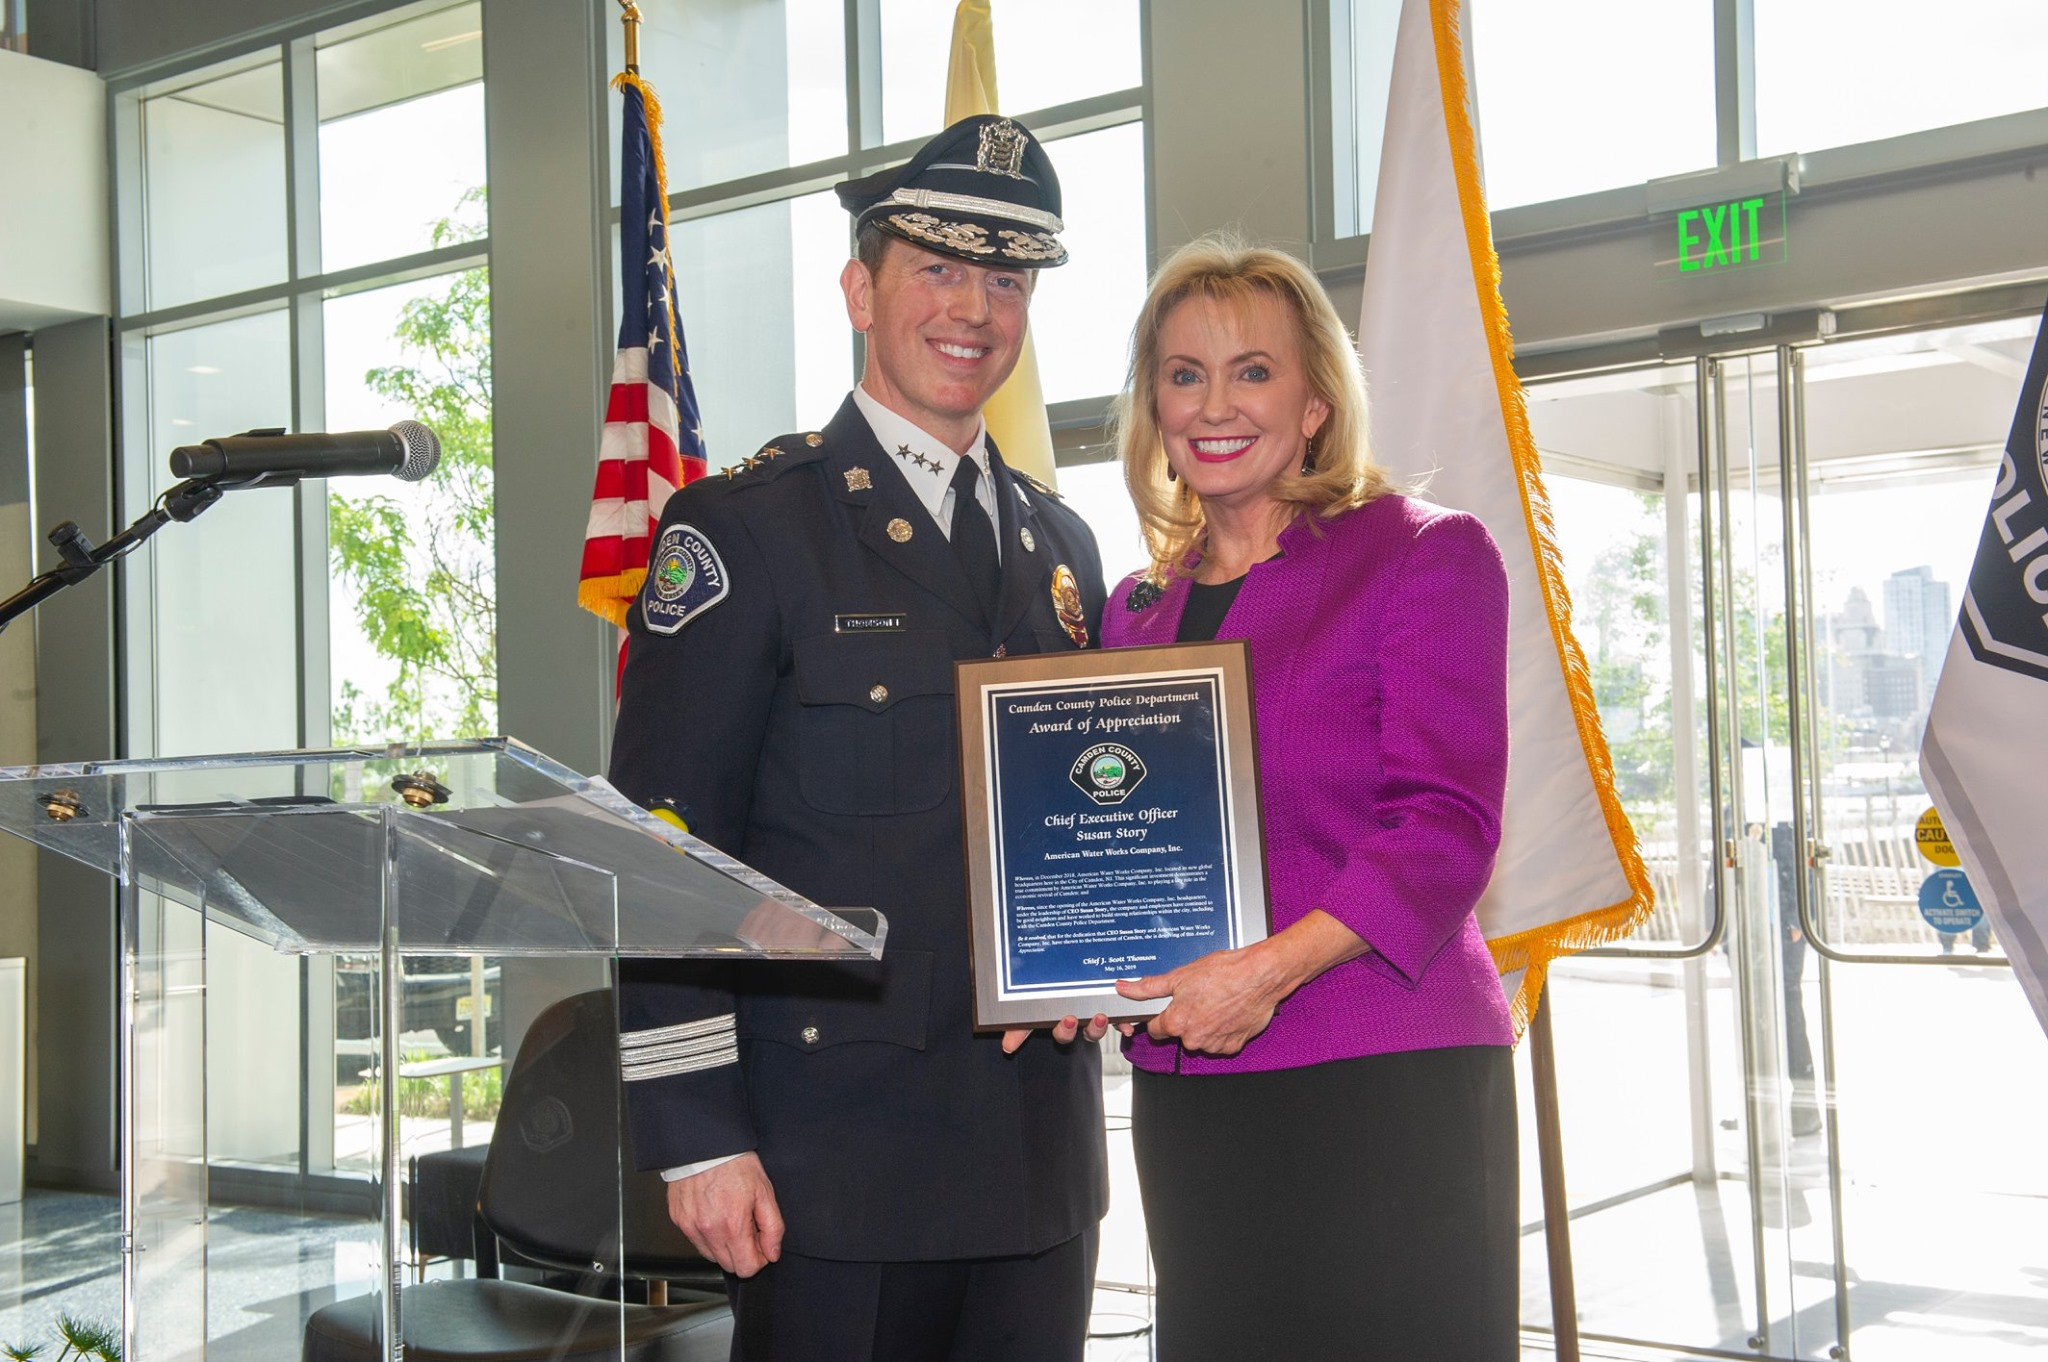 CEO Susan Story receives an Award of Appreciation from the local Police Department for American Water and the American Water Charitable Foundation's generous donation.